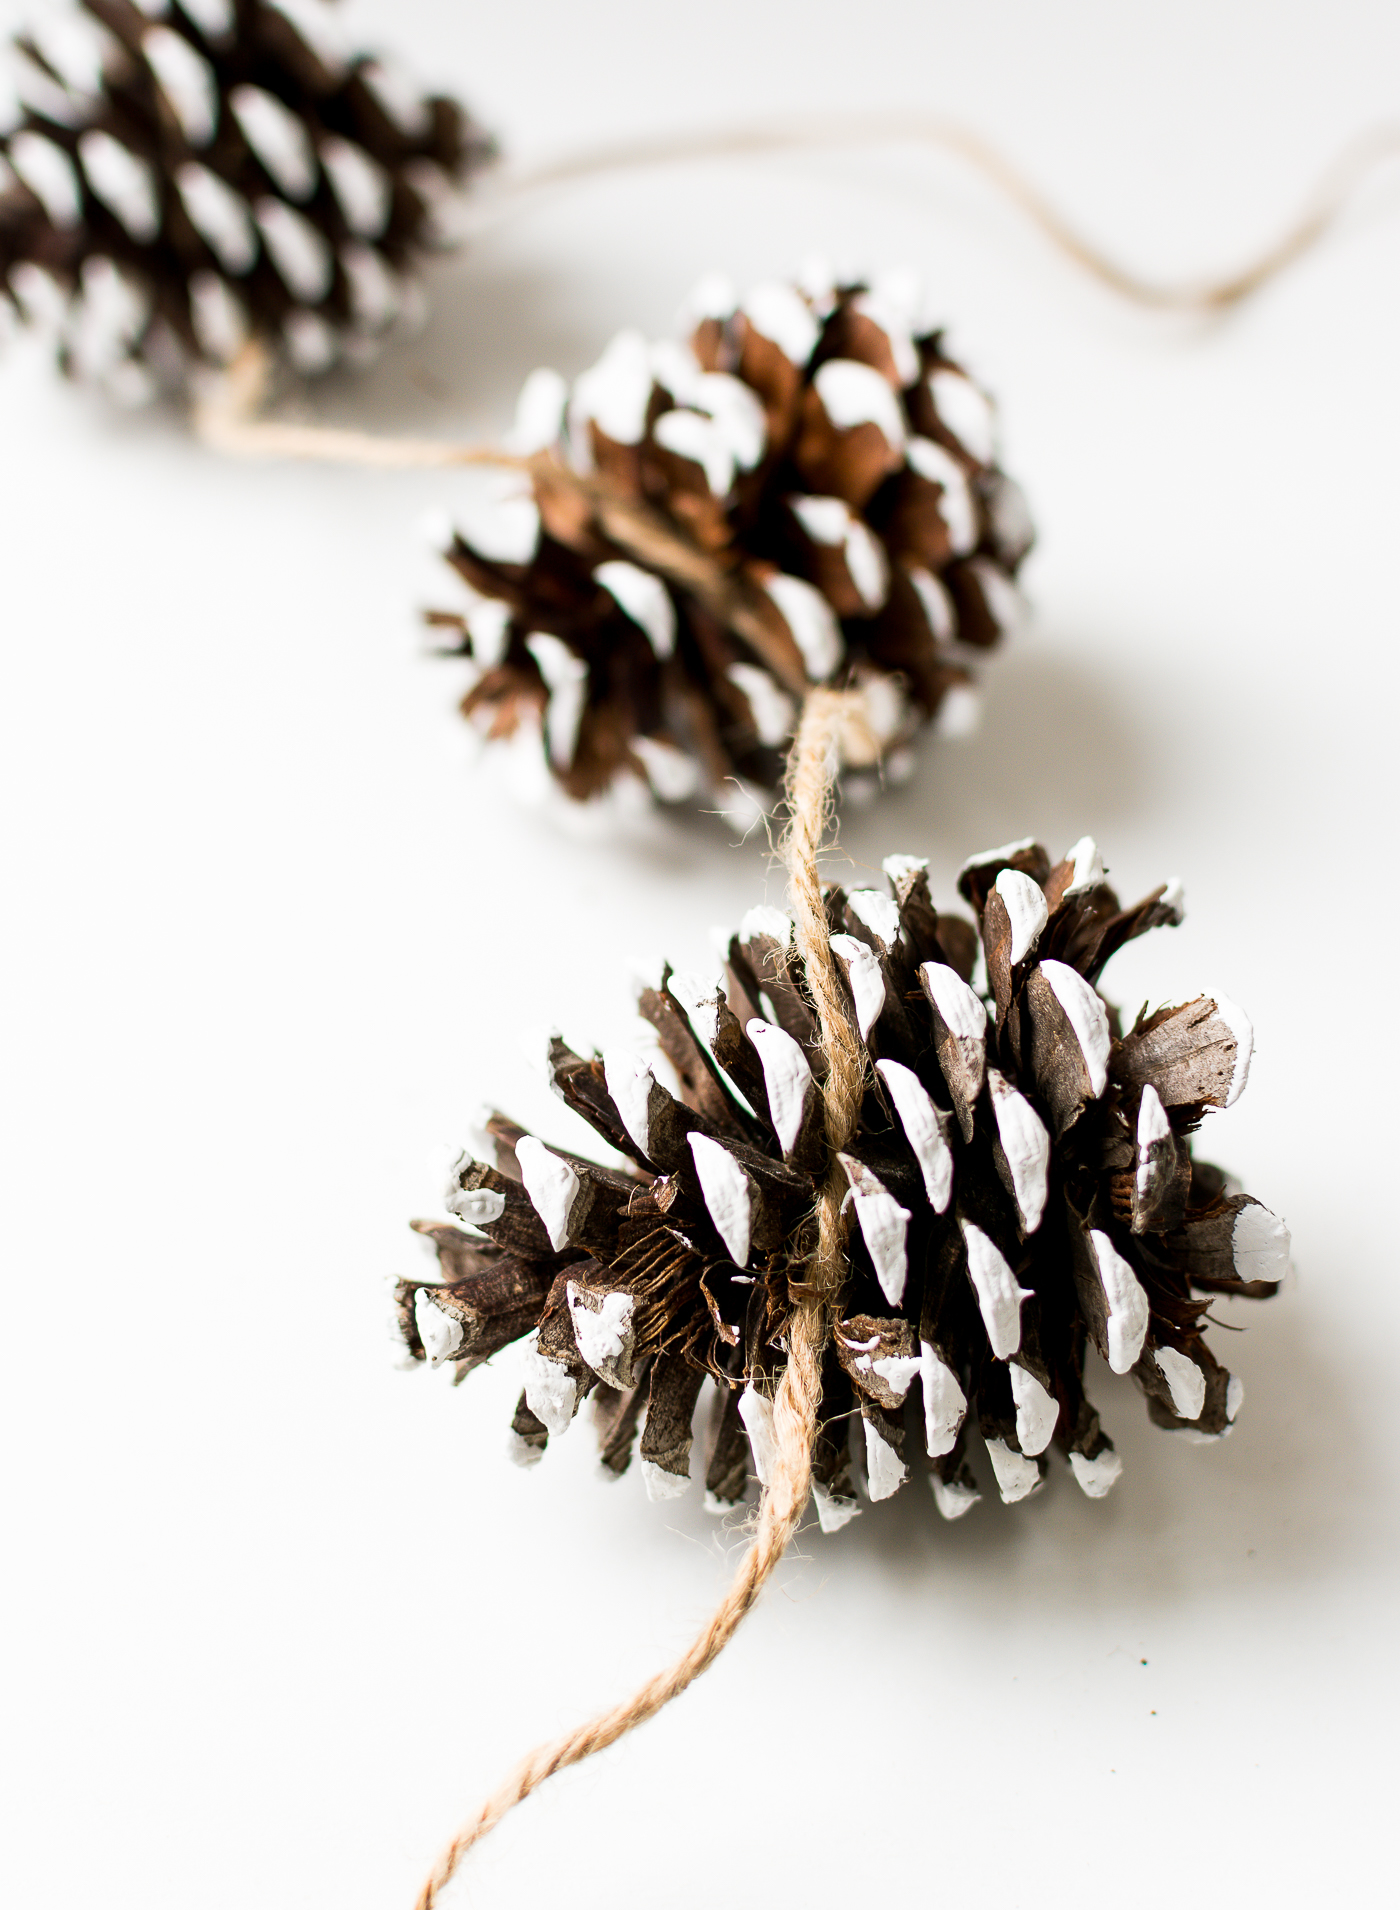 painted-pine-cones-how-to-paint-itallstartedwithpaint-com-9-1